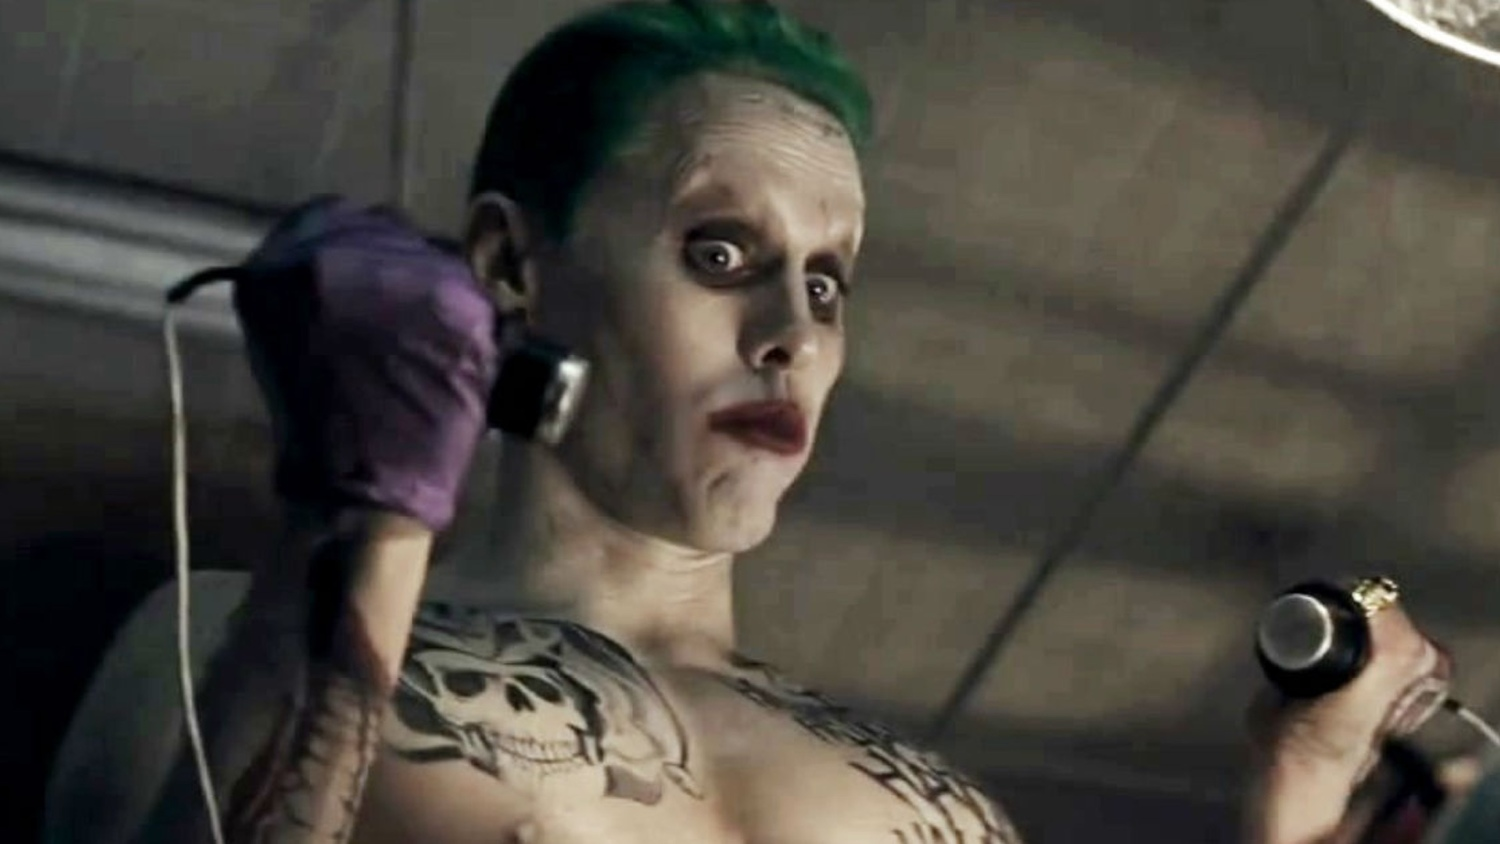 SUICIDE SQUAD - The Joker\'s Tattoos and Teeth Tell a Story That Are ...